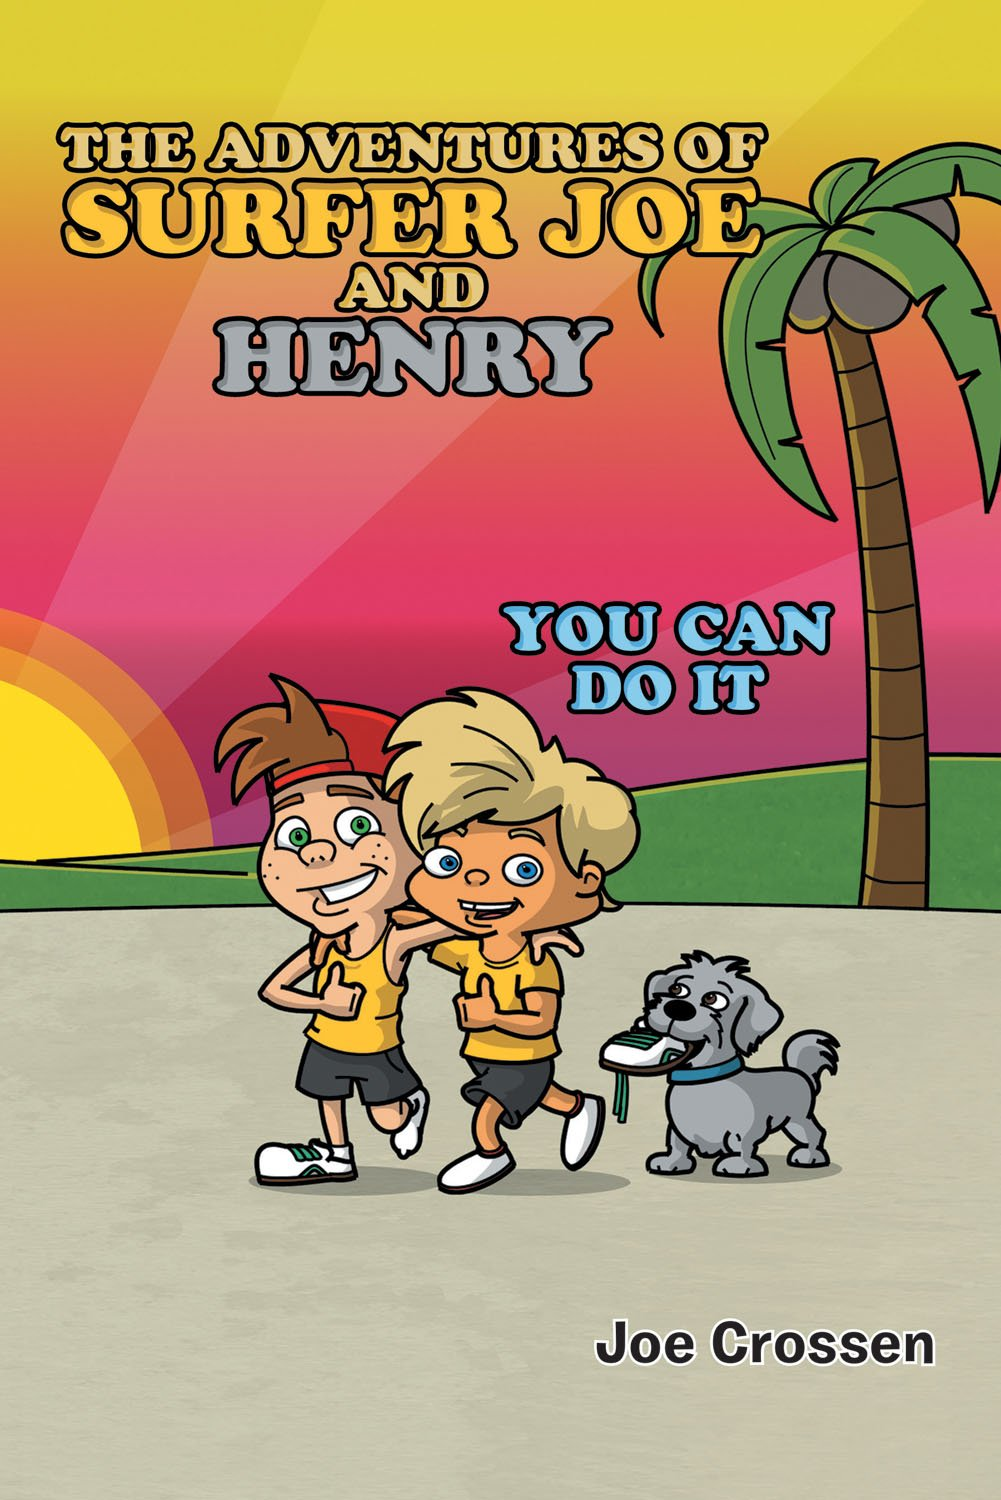 Read Online The Adventures of Surfer Joe and Henry - You Can Do It ePub fb2 ebook